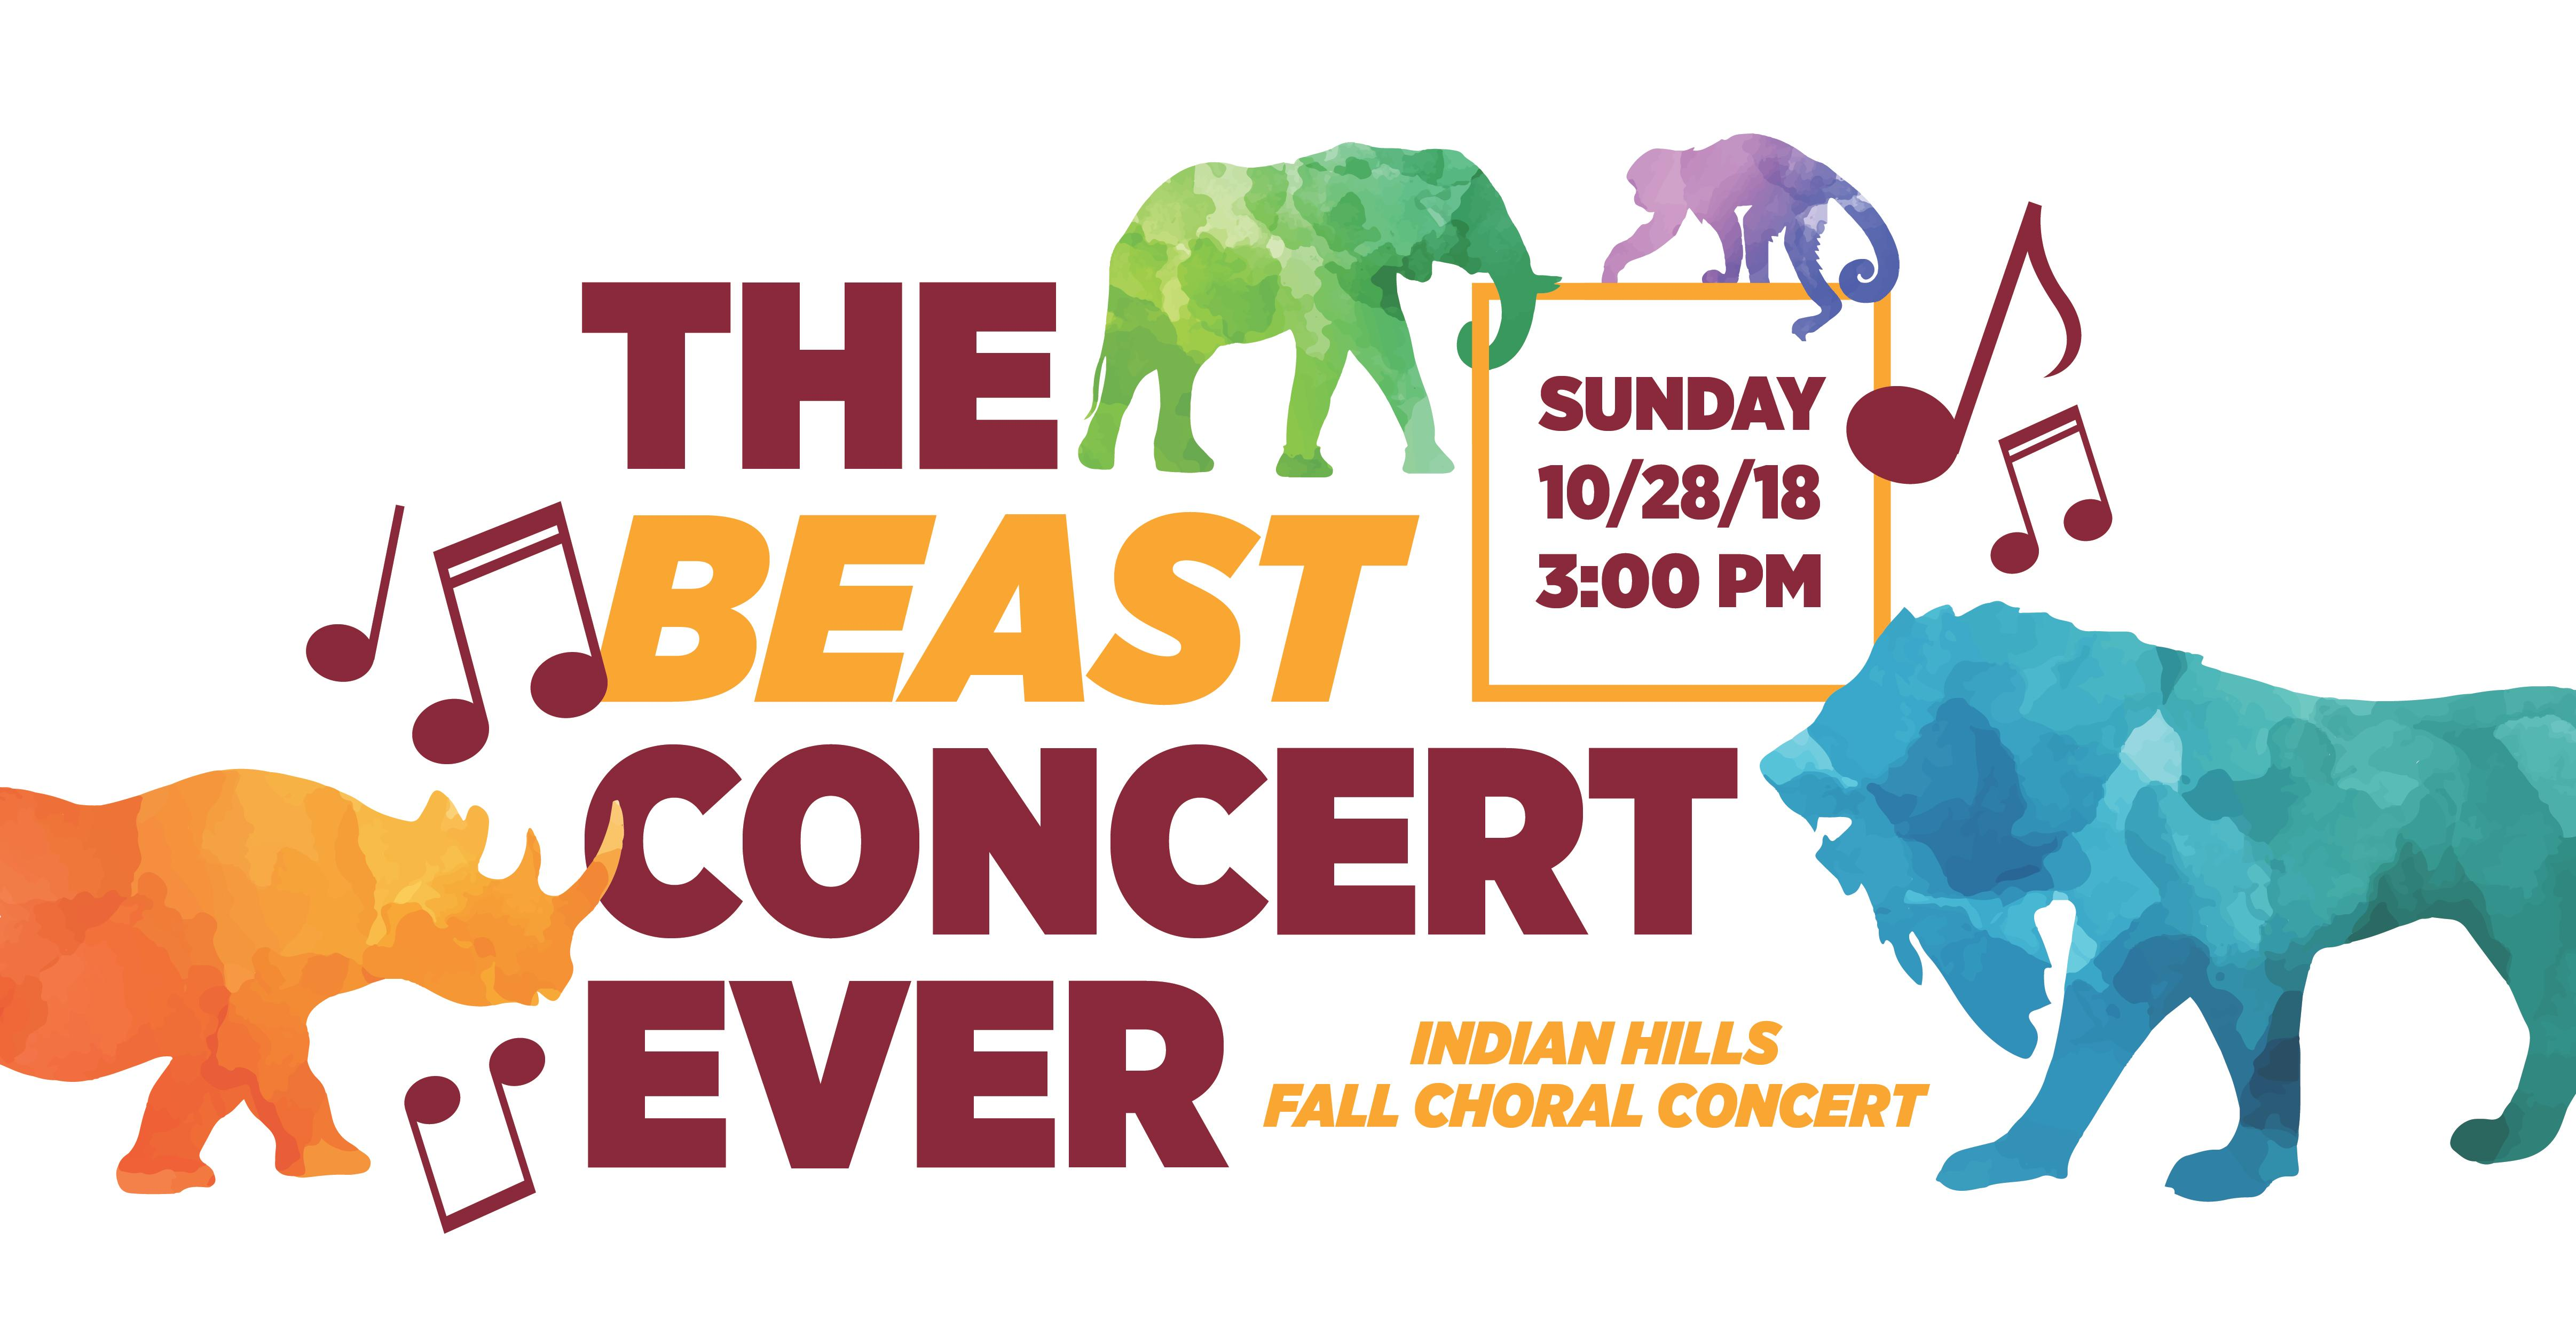 The Beast Concert Ever